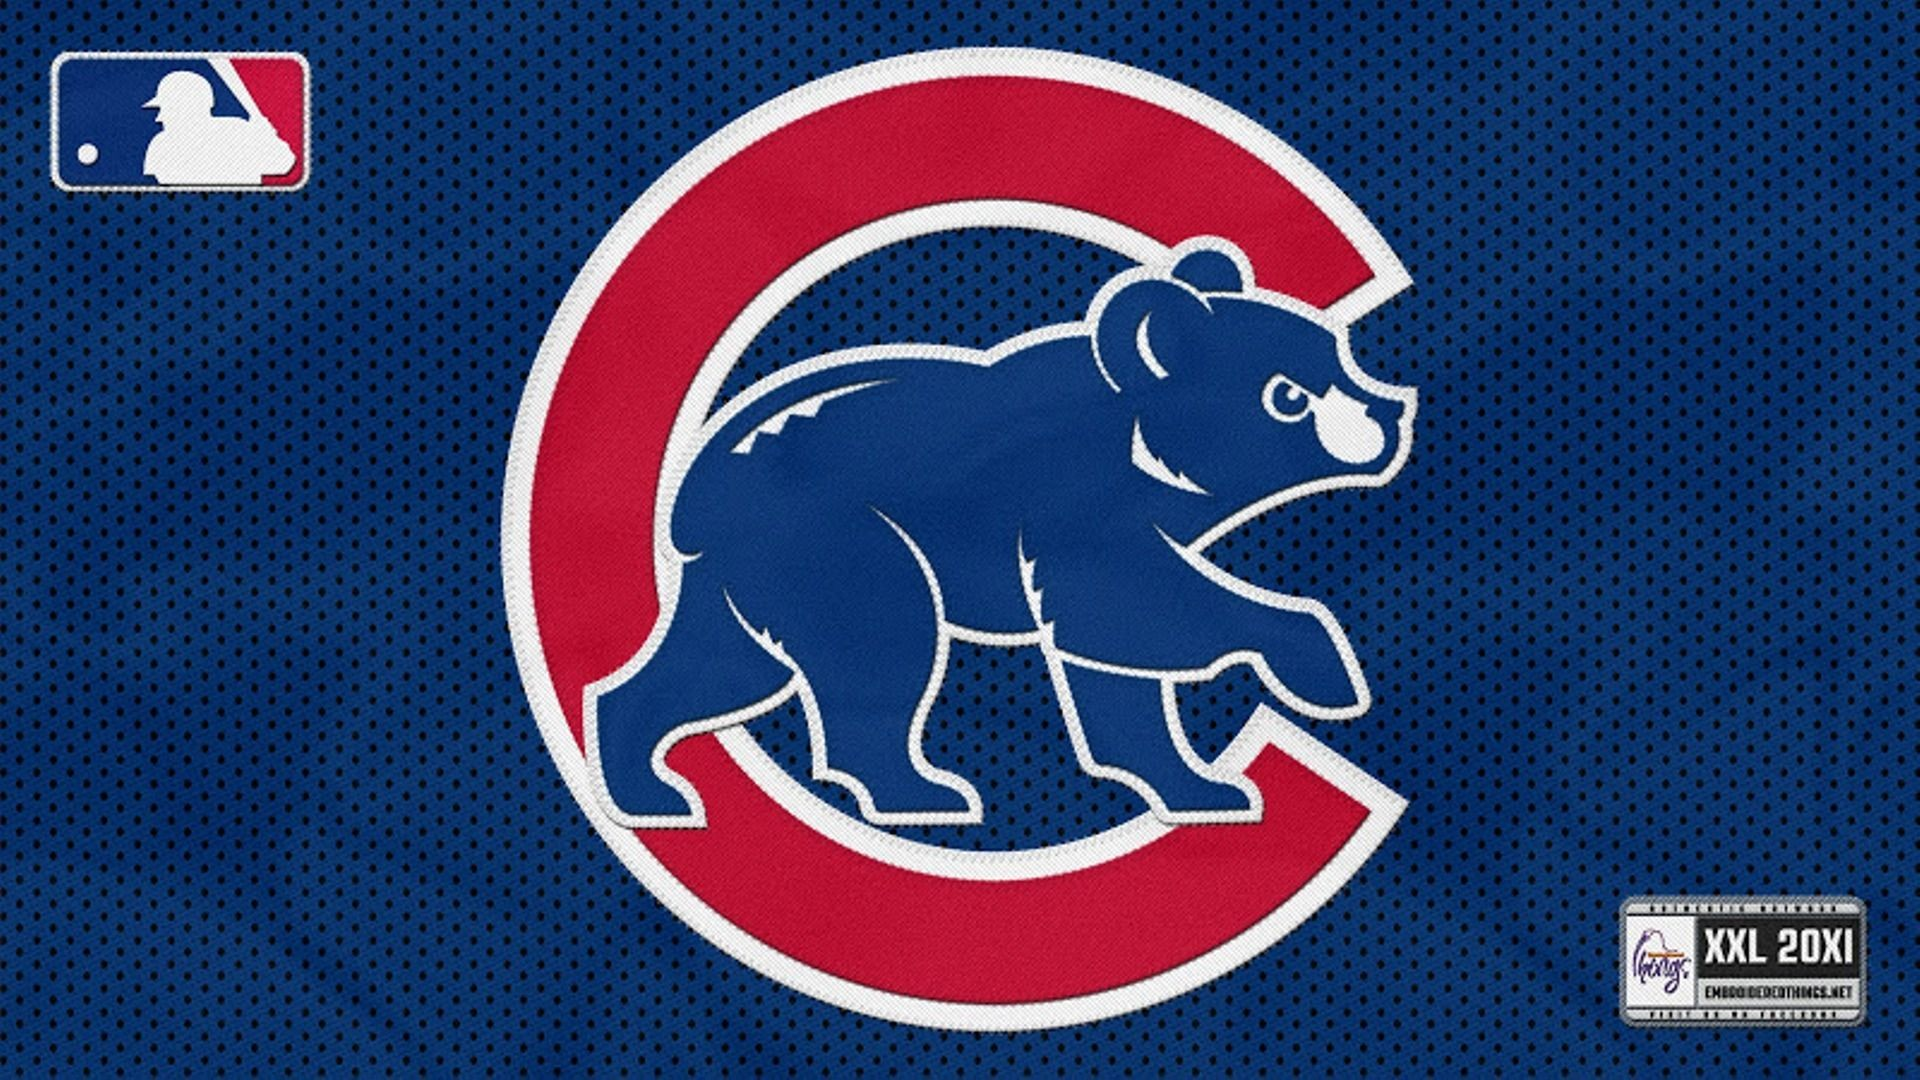 1920x1080 chicago-cubs-wallpaper-hd